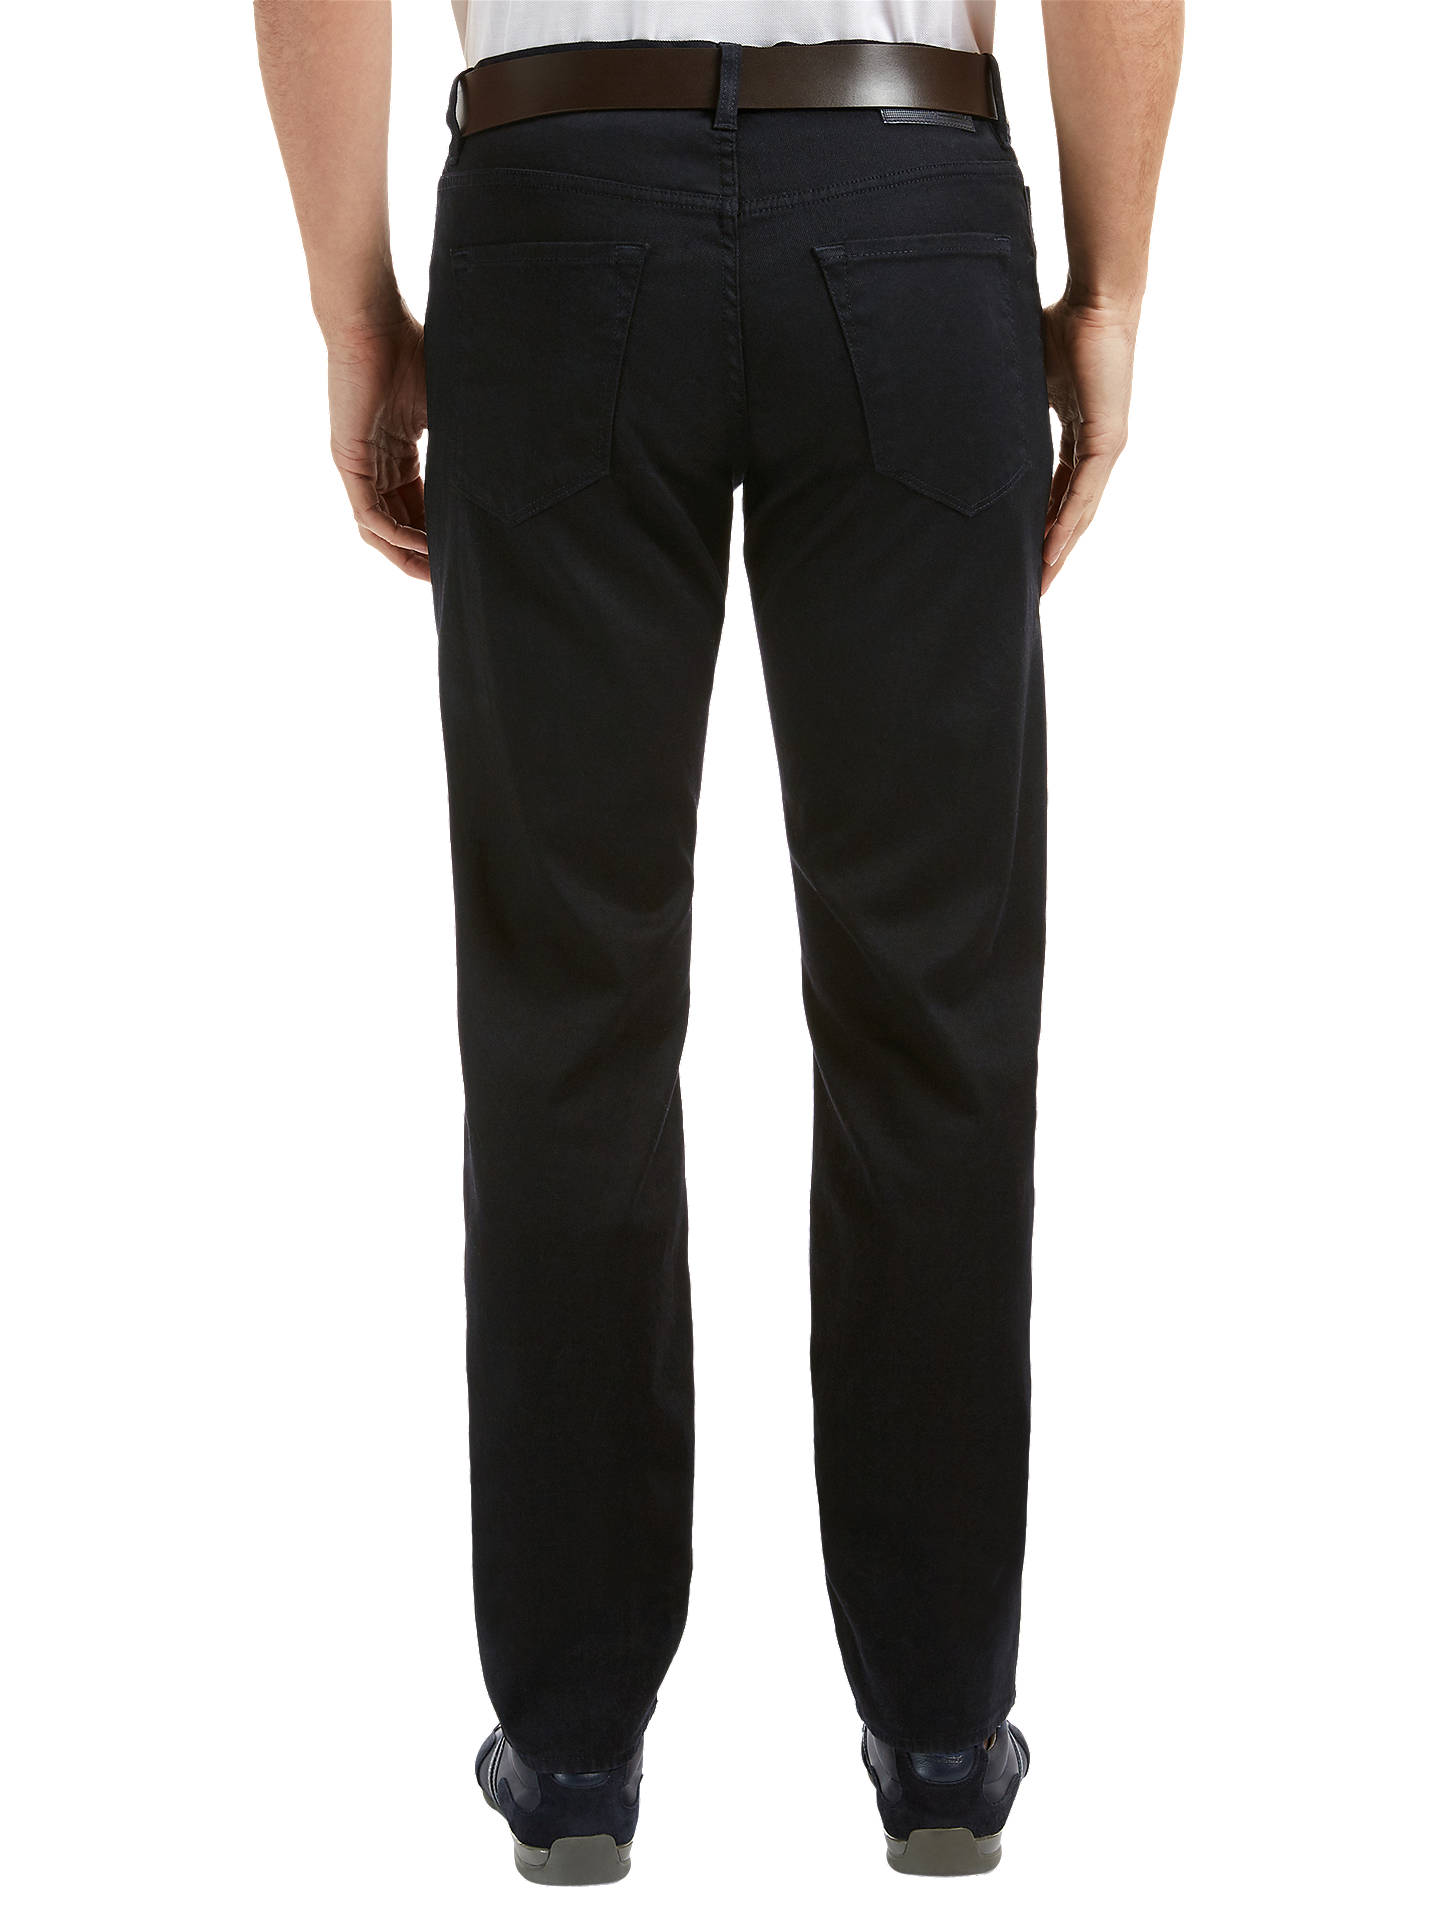 BuyBOSS Green C-Maine Straight Jeans, Oxford, 30R Online at johnlewis.com